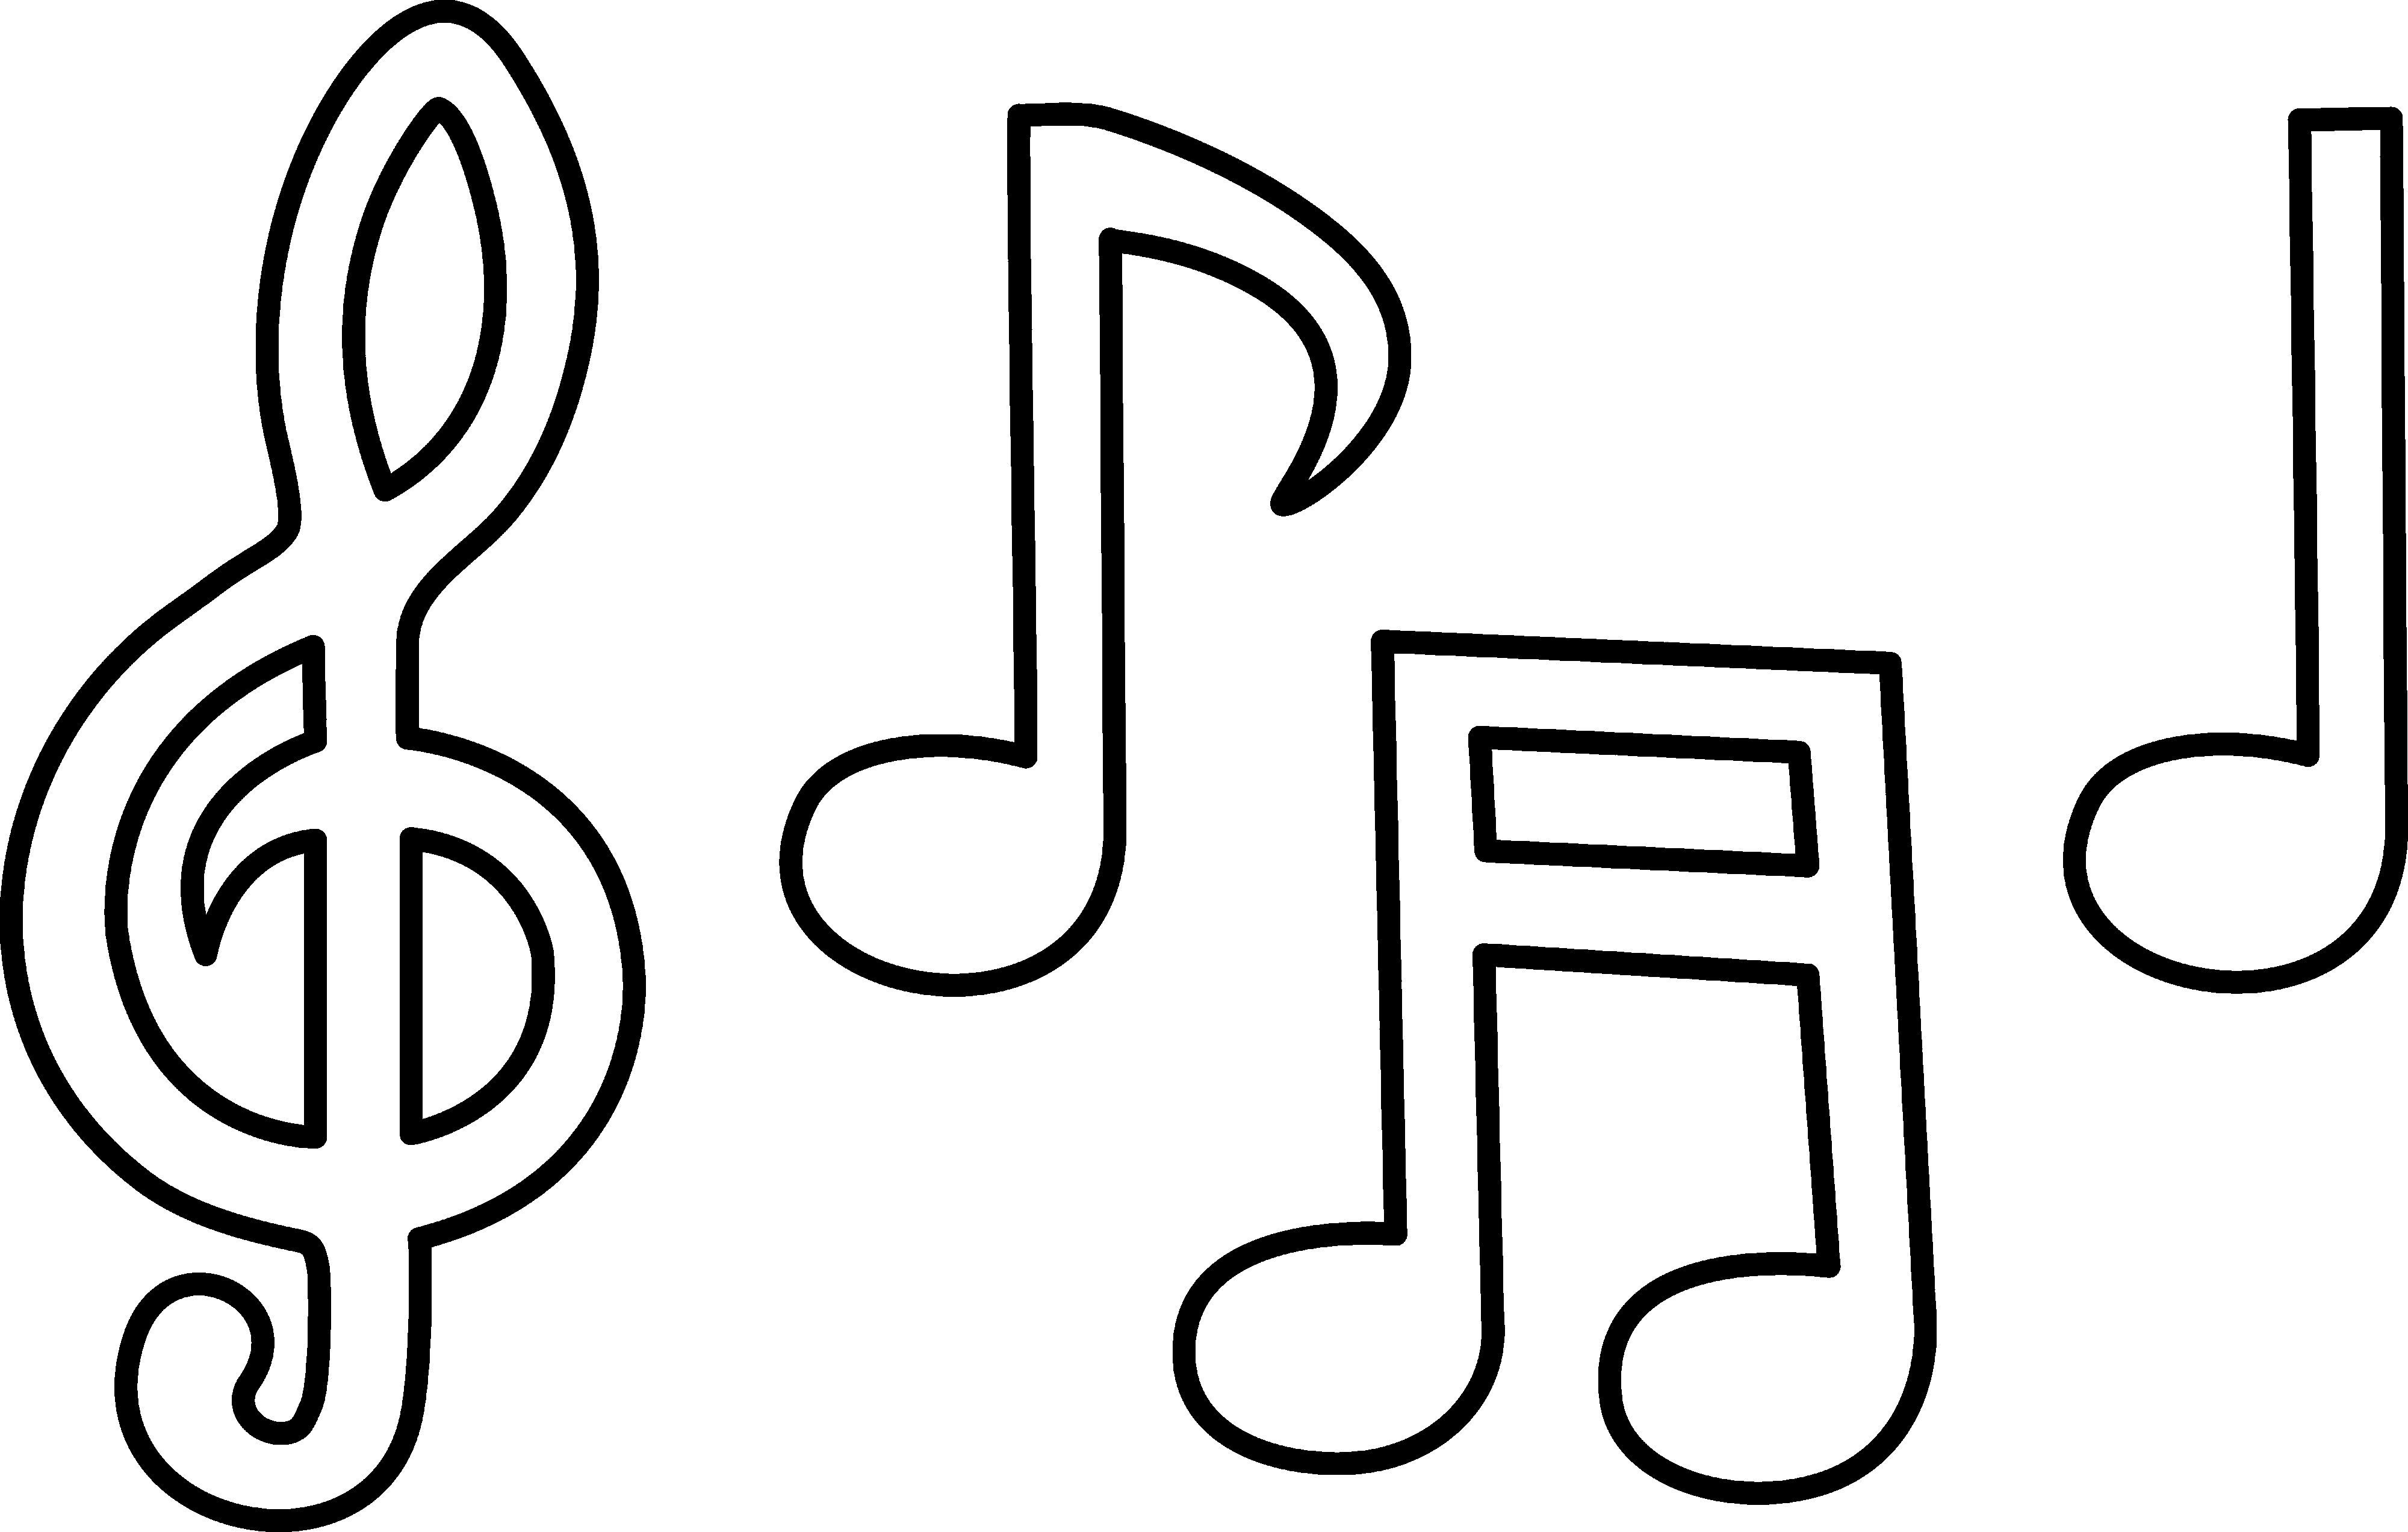 Music Note Coloring Pages For Kids Fzf Printable Music Coloring Pages For Kids Musik Noten Symbol Musik Clipart Musiknoten